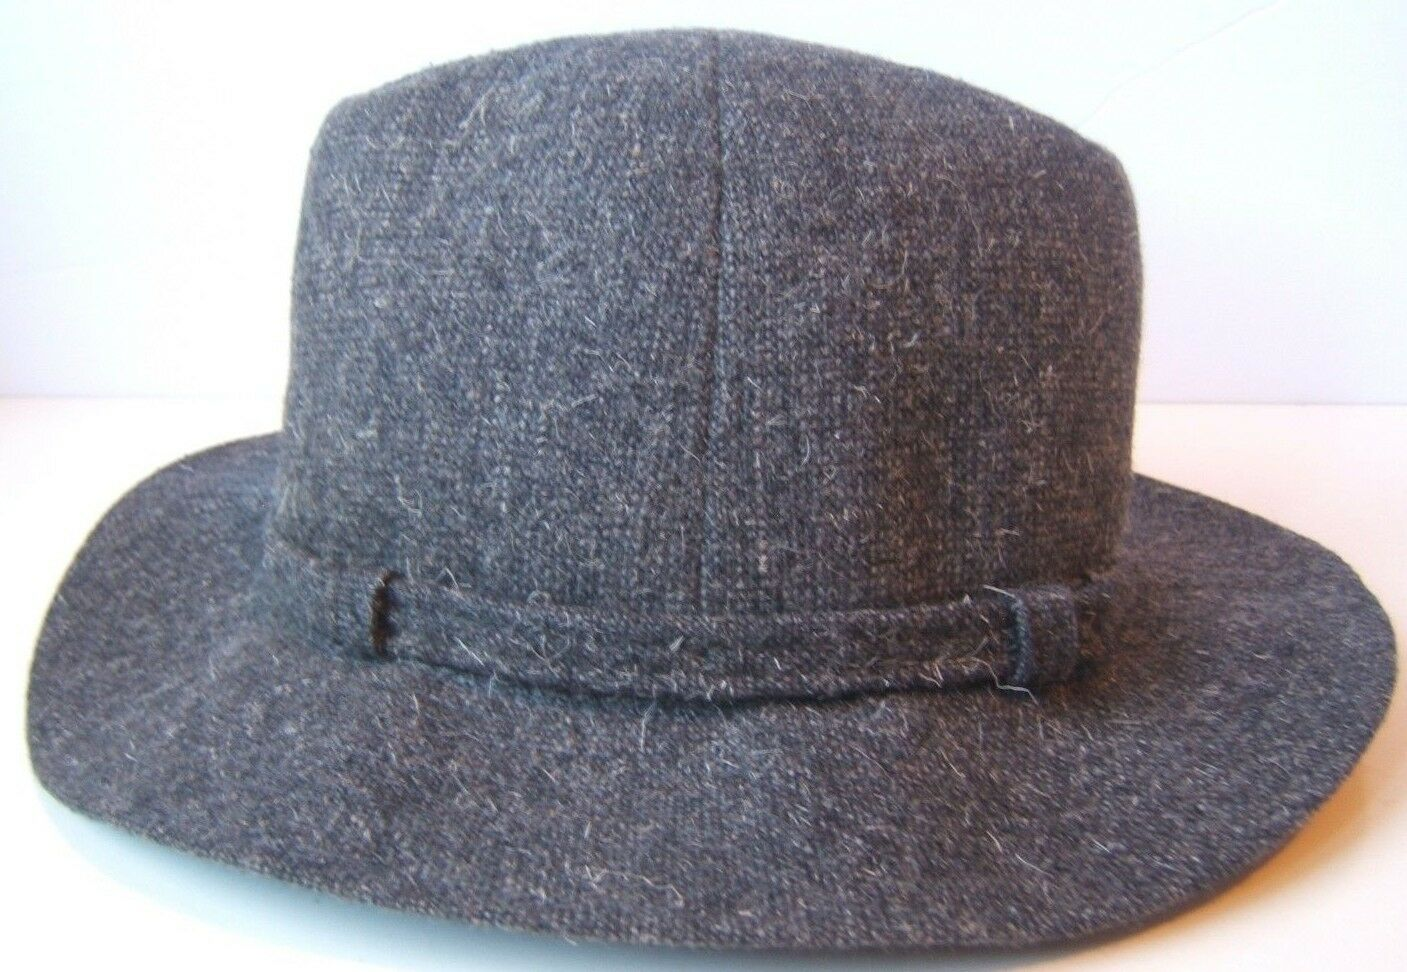 Vintage Biltmore Fedora Hat Gray Size 7 Canada 56cm Cap Made in Canada 7 968d8a